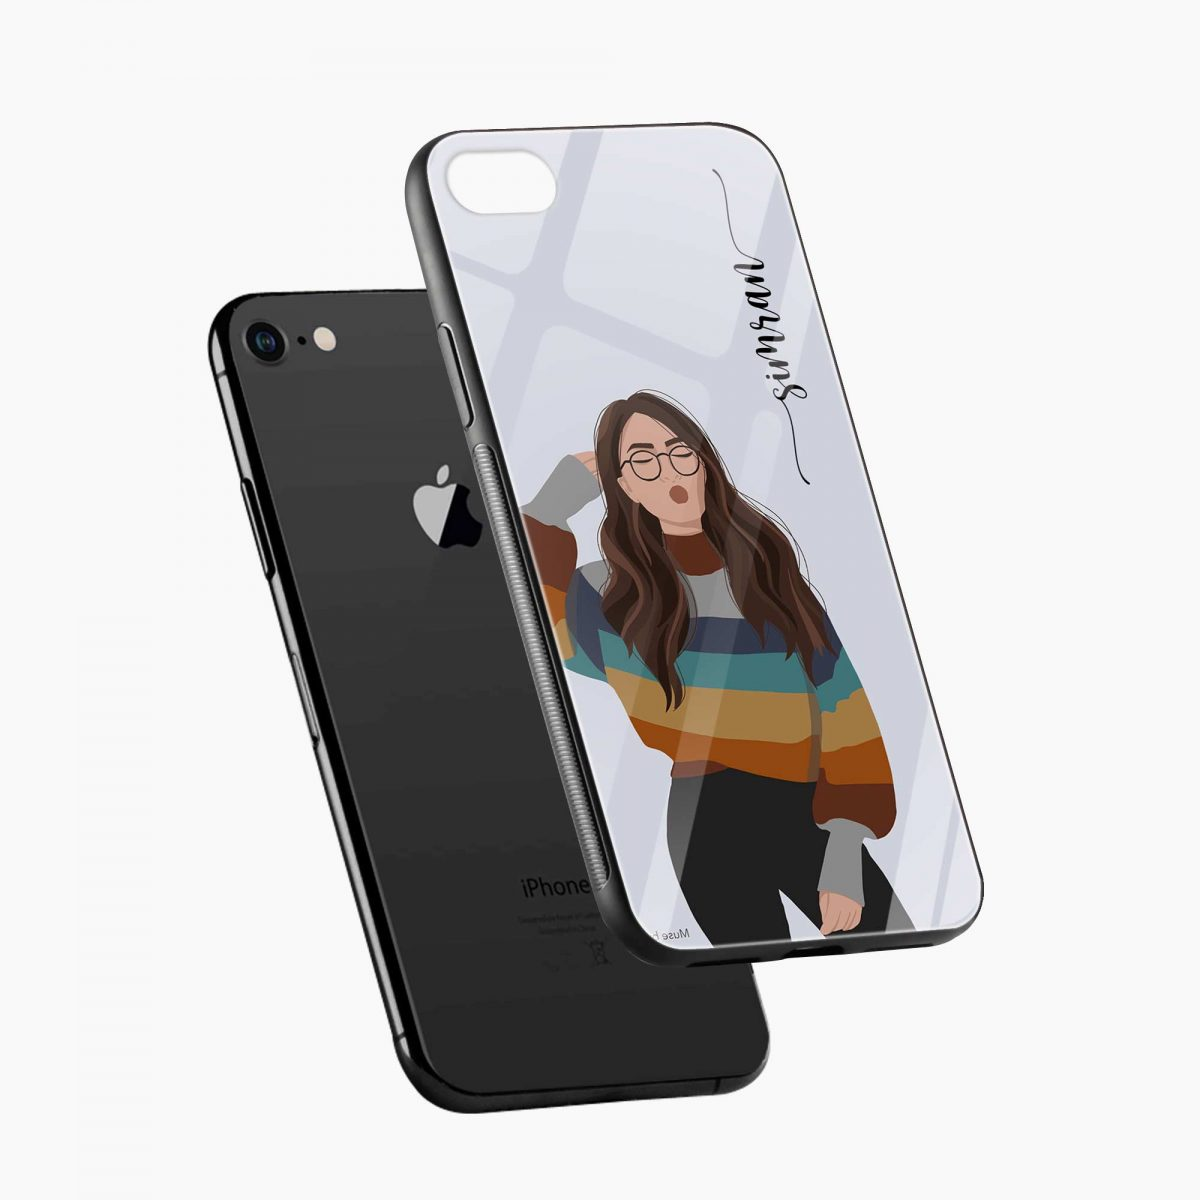 its me diagonal view apple iphone 6 7 8 se back cover